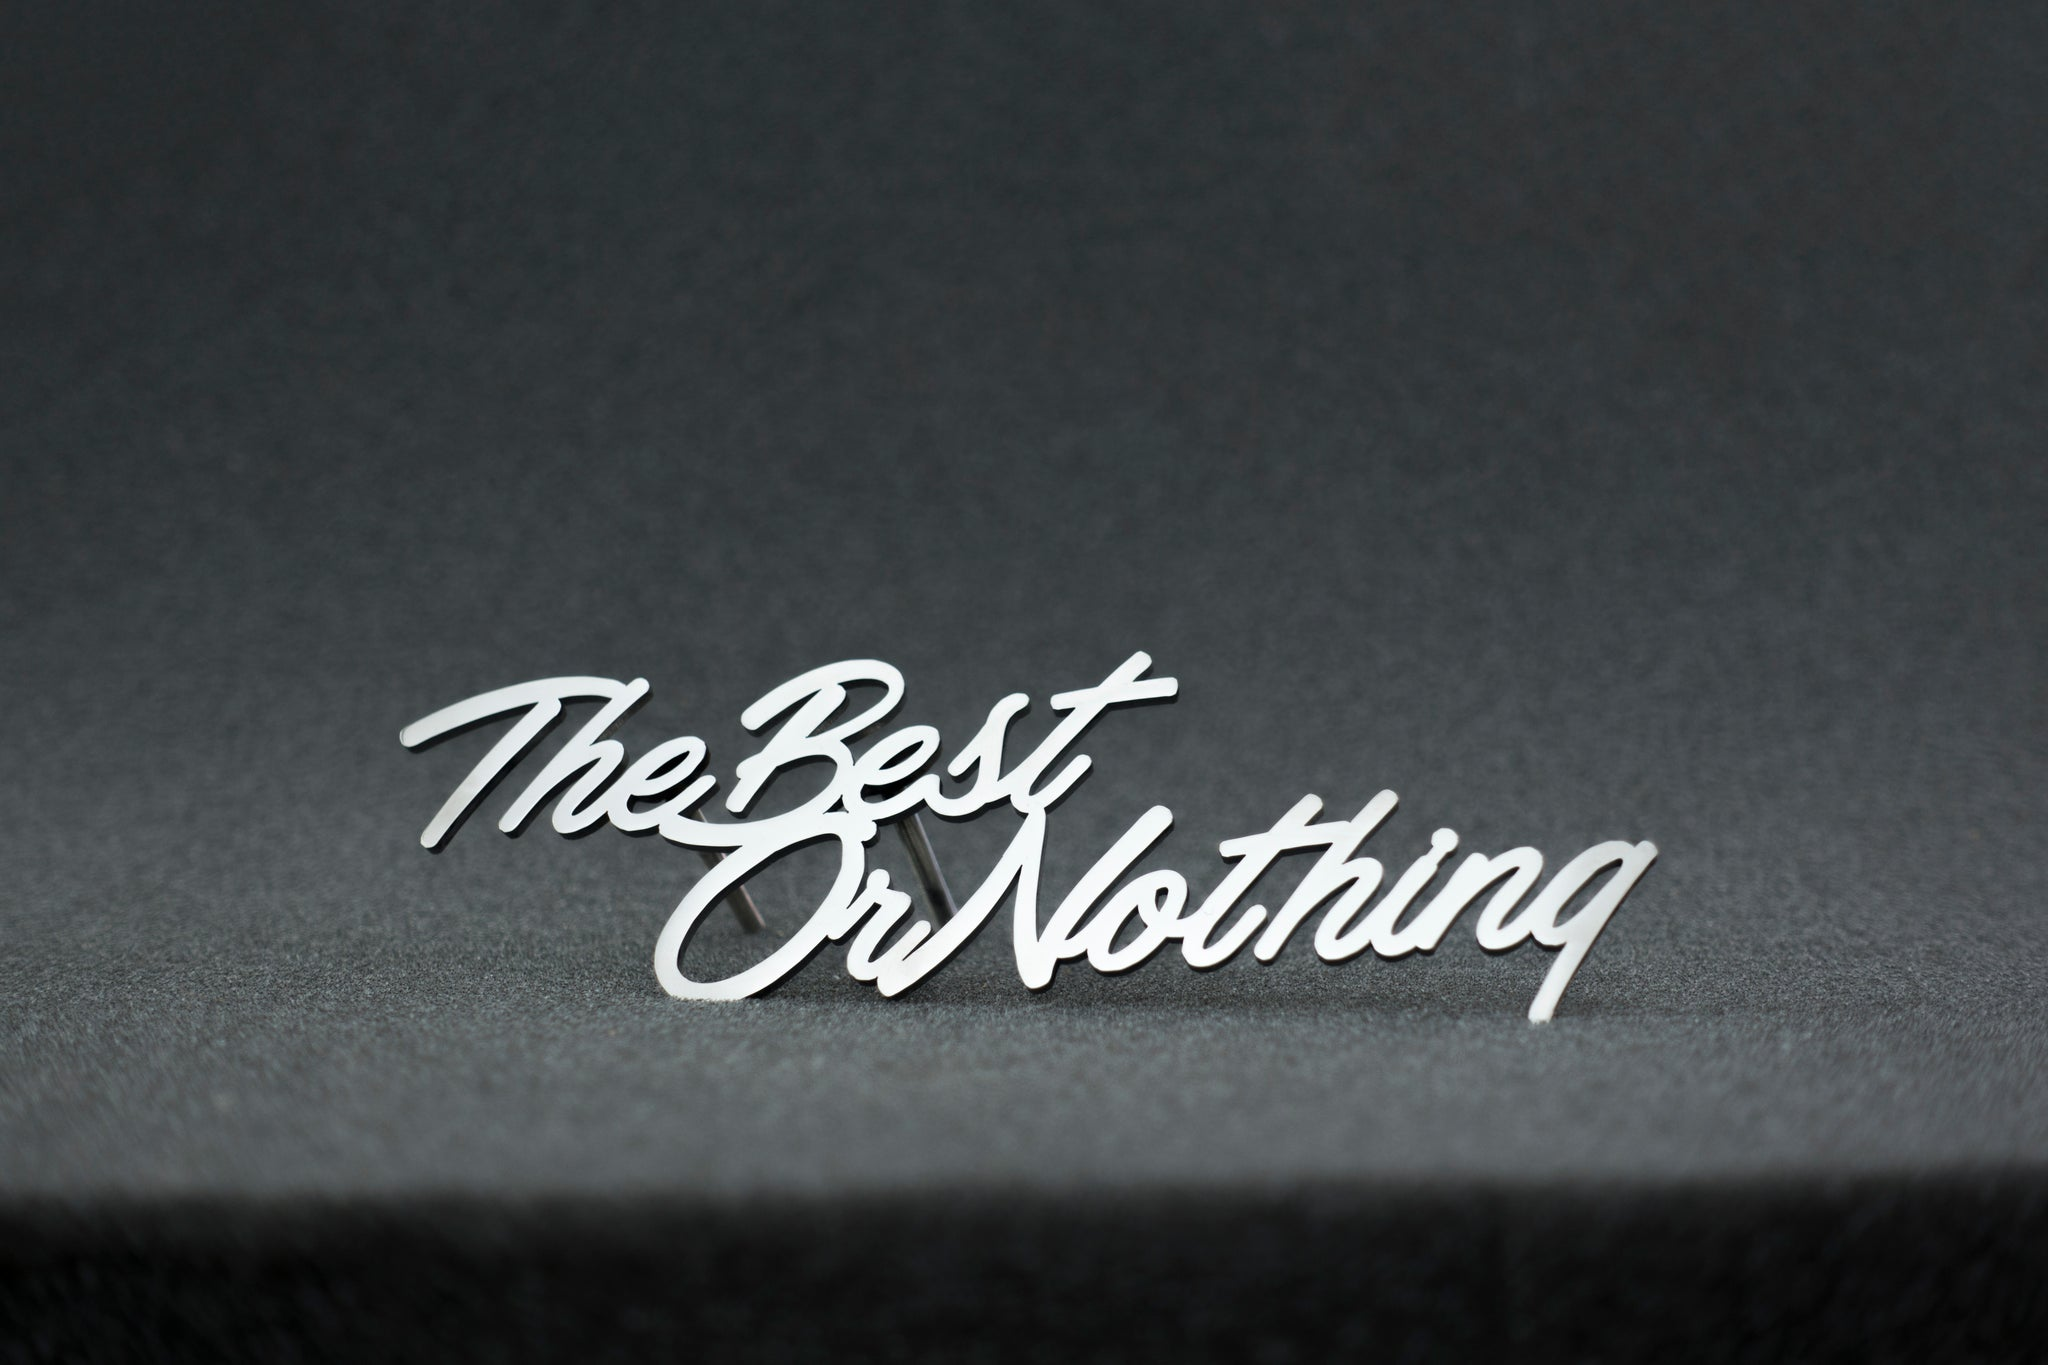 The Best Or Nothing grill badge emblem